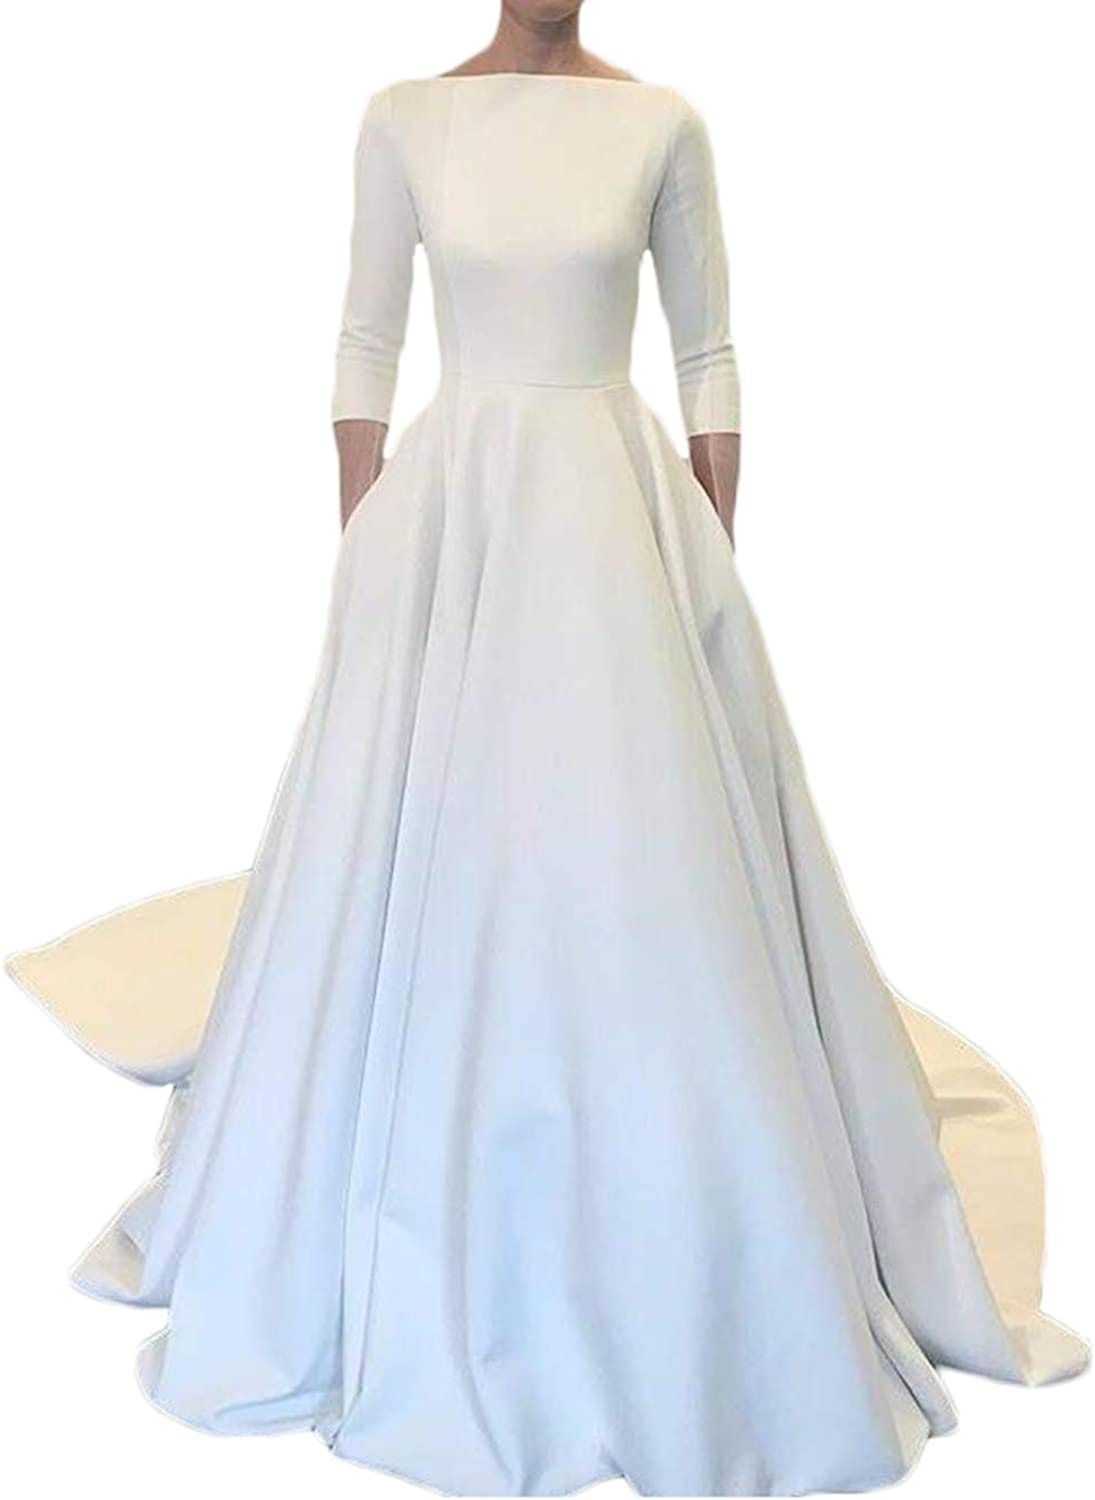 Alilith.Z Elegant Boat Neck Satin Wedding Dresses for Bride 2019 Long Train 3 4 Sleeves Wedding Gowns for Women with Pockets